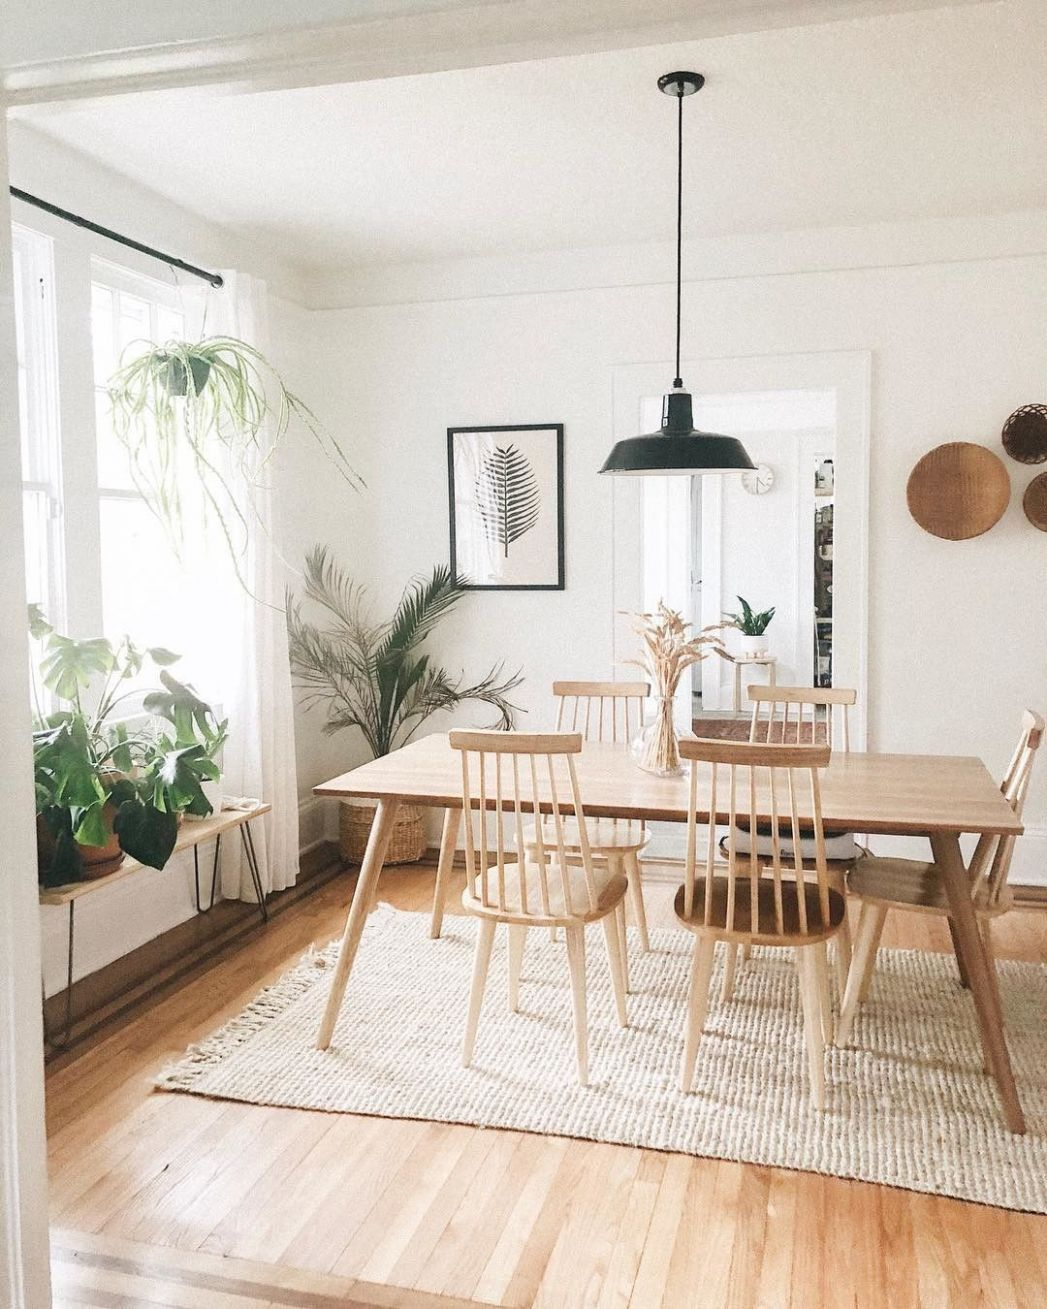 Pin on Home Decor - dining room ideas oak table